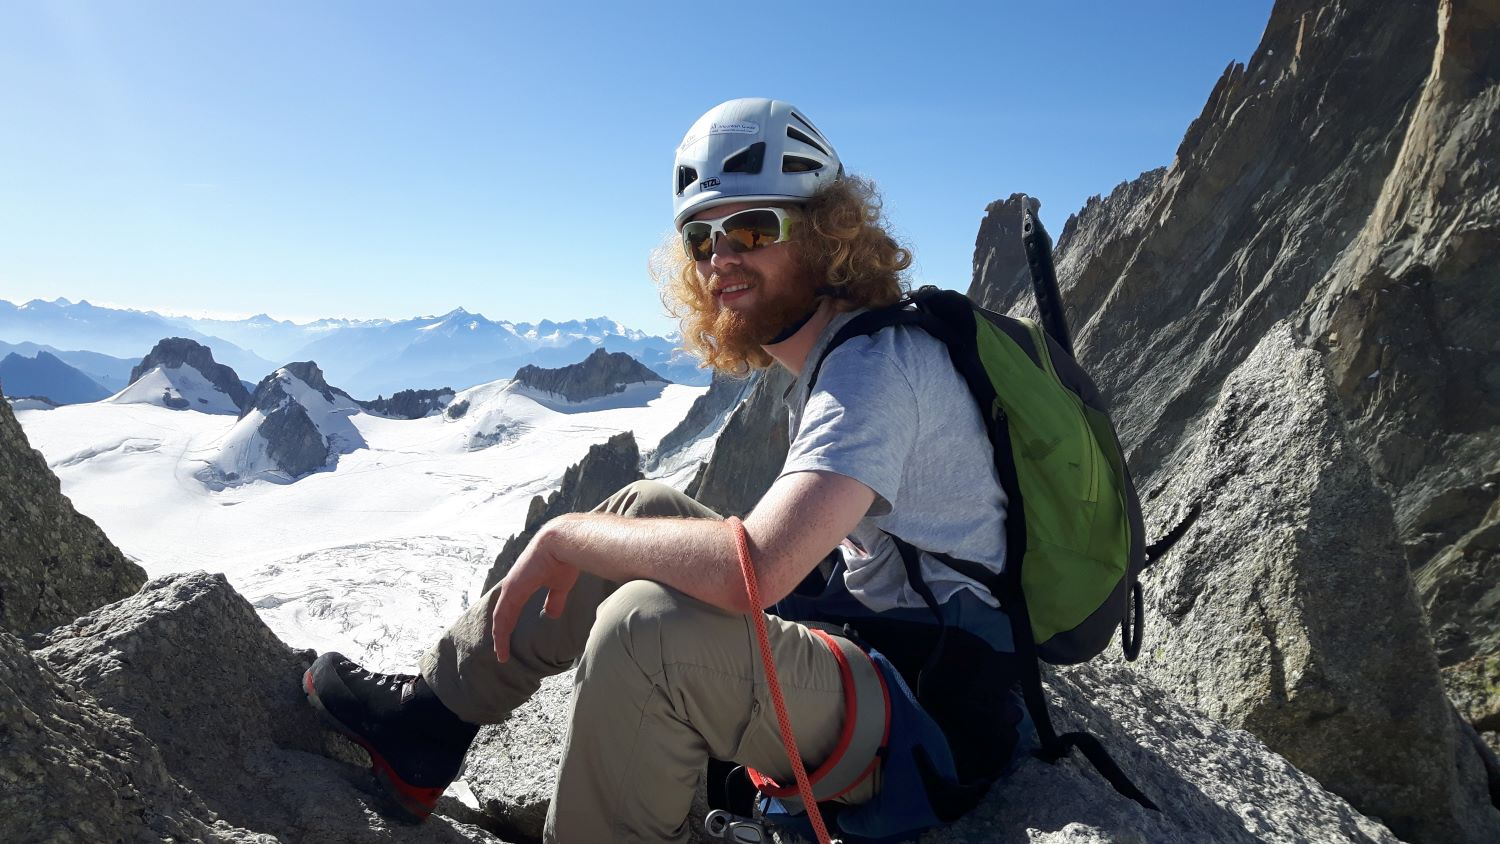 Day three: Sam on the summit of Pointe Lachenal, looking towards Italy